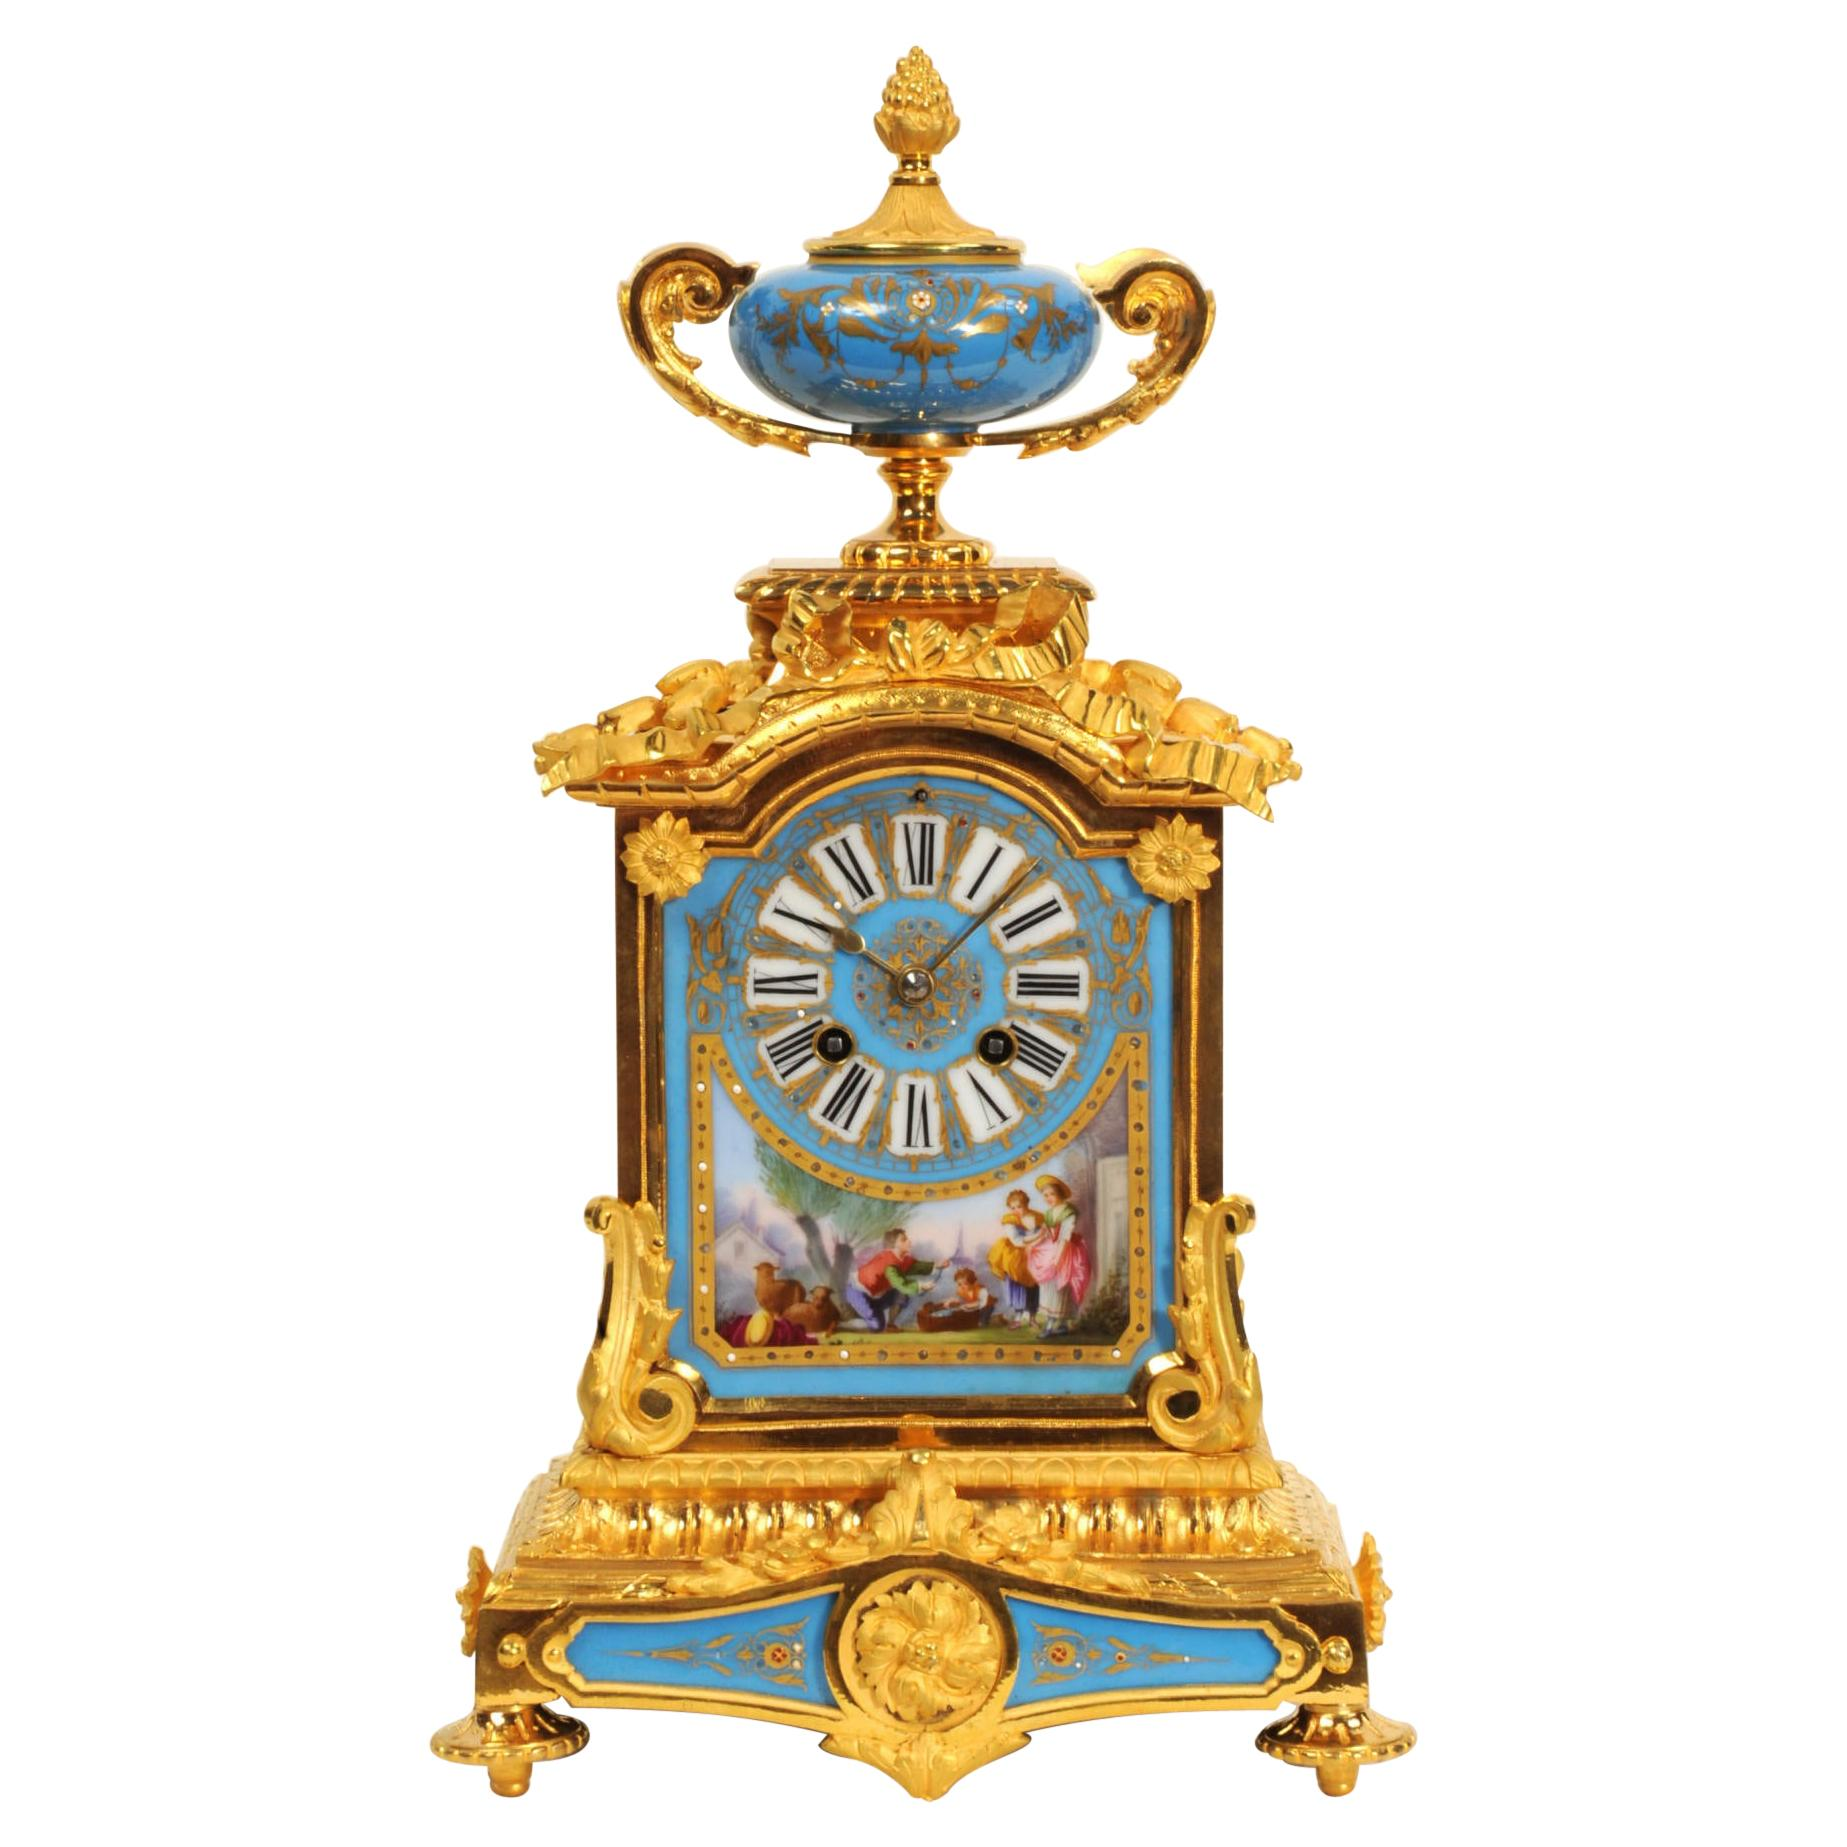 Antique French Sevres Porcelain and Ormolu Clock